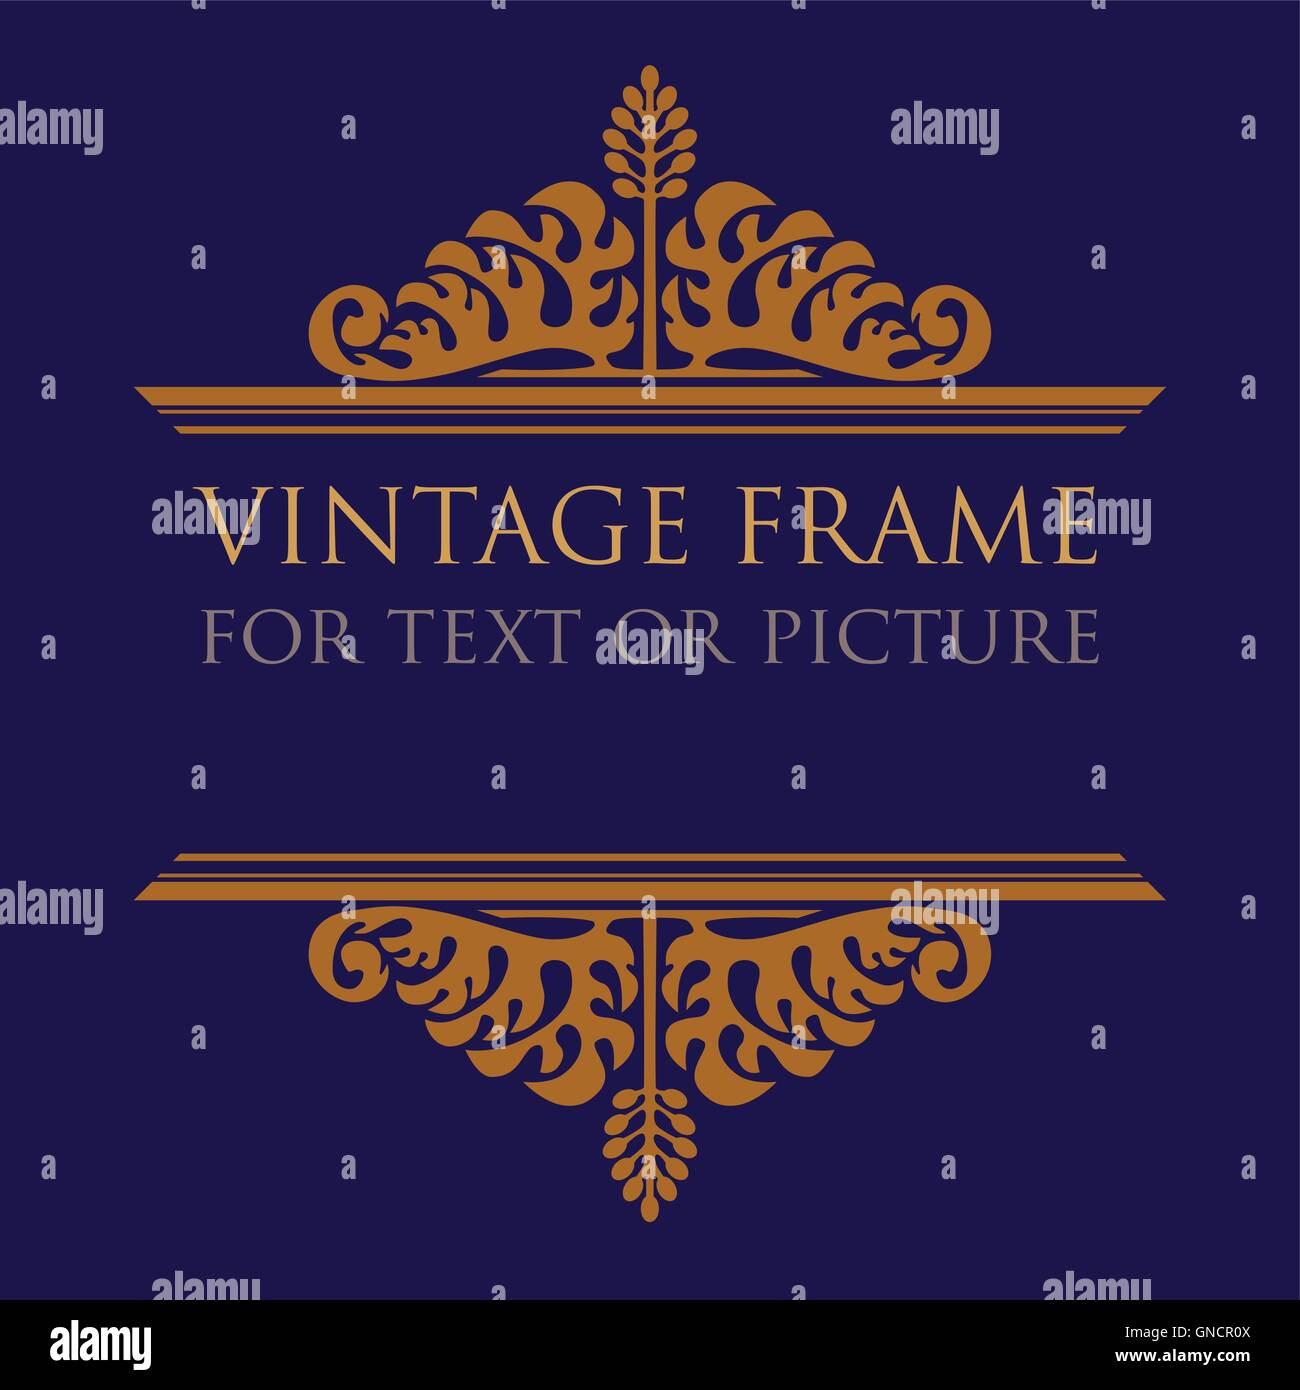 Vintage frame design for text or picture, with stylized acanthus ornament. Opened variant. - Stock Image